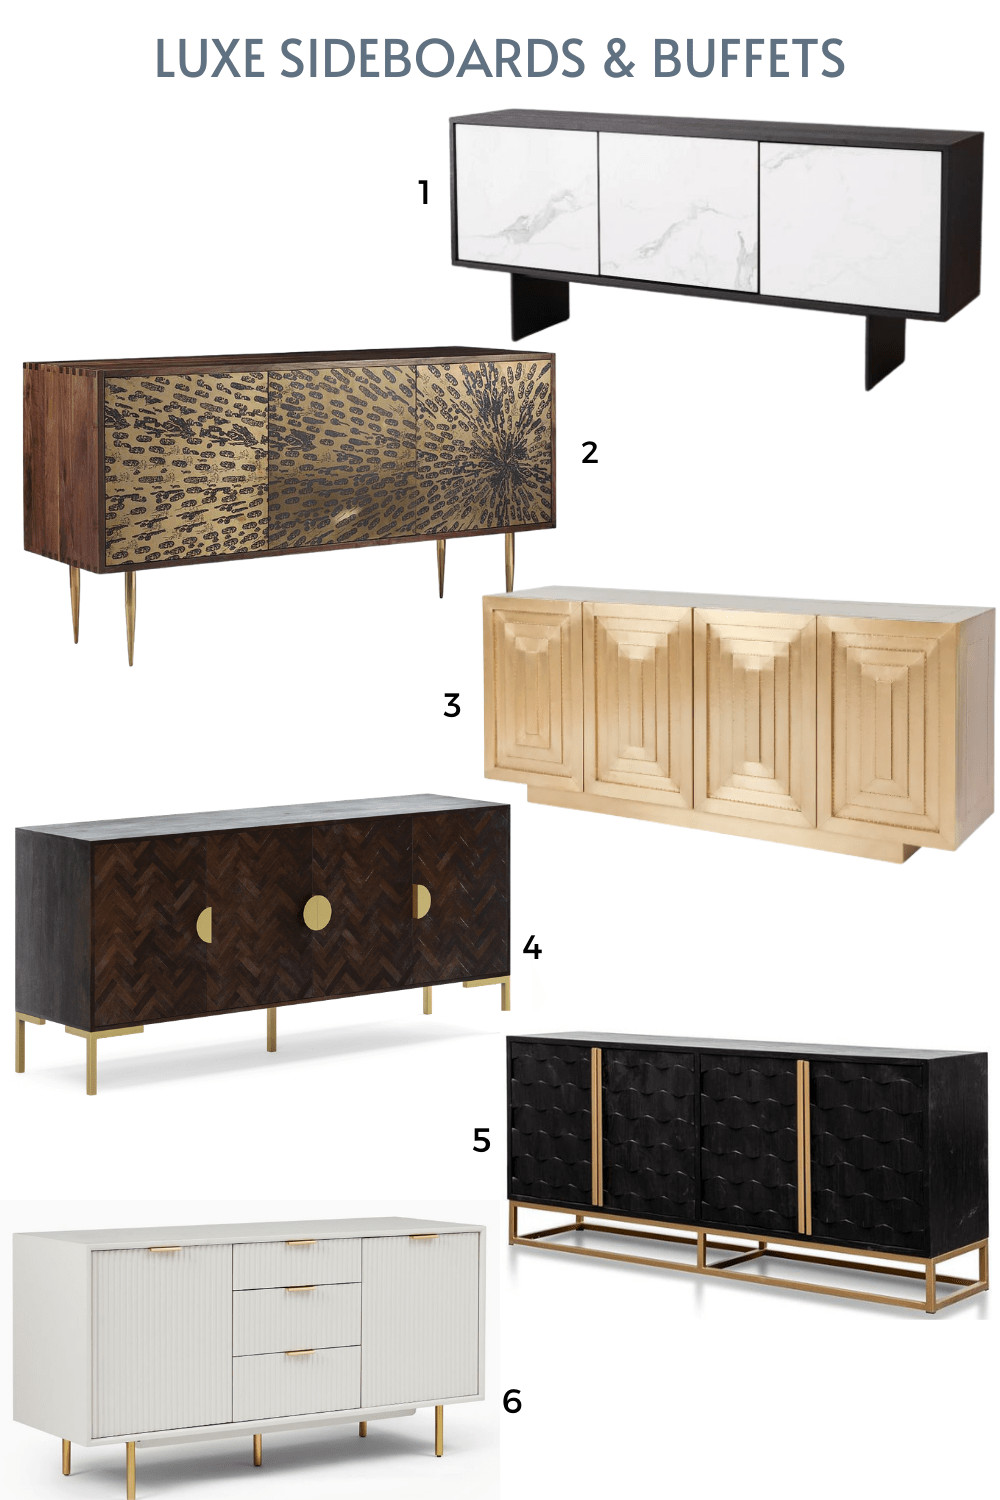 luxe sideboards and buffets online